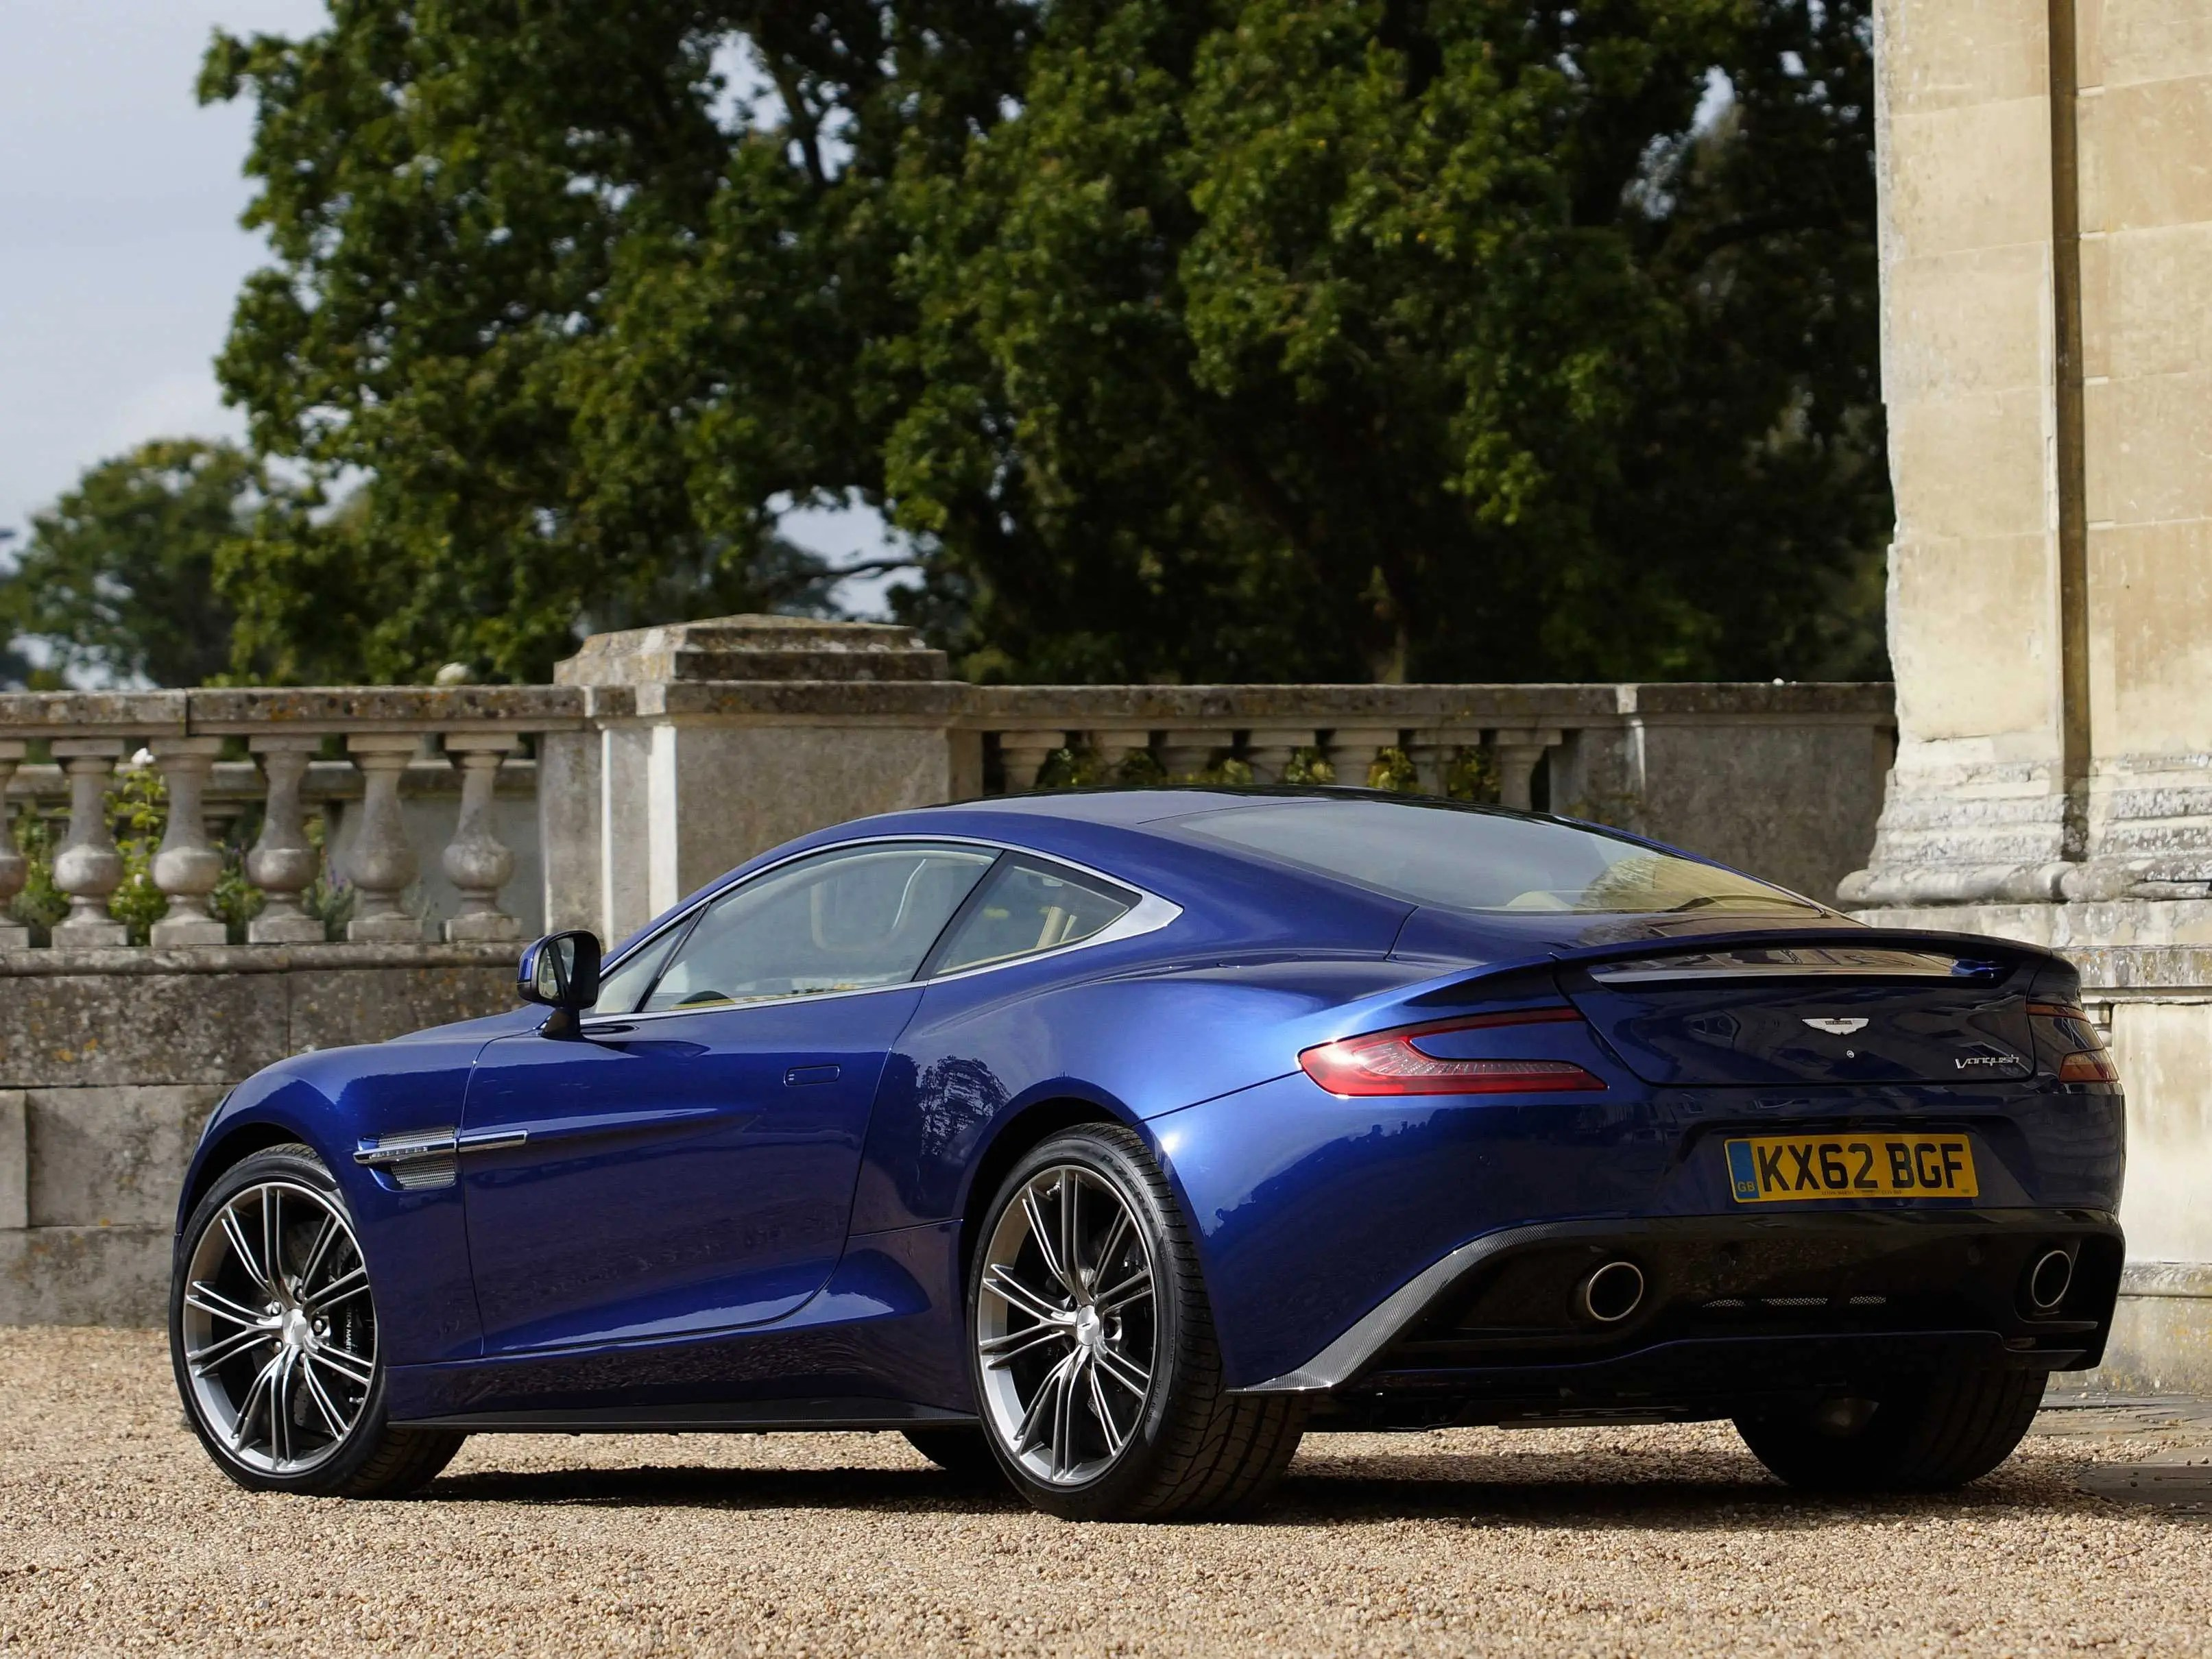 With the Vanquish, designer Marek Reichman gave form to a seductively styled modern interpretation of the classic Aston Martin supercar.